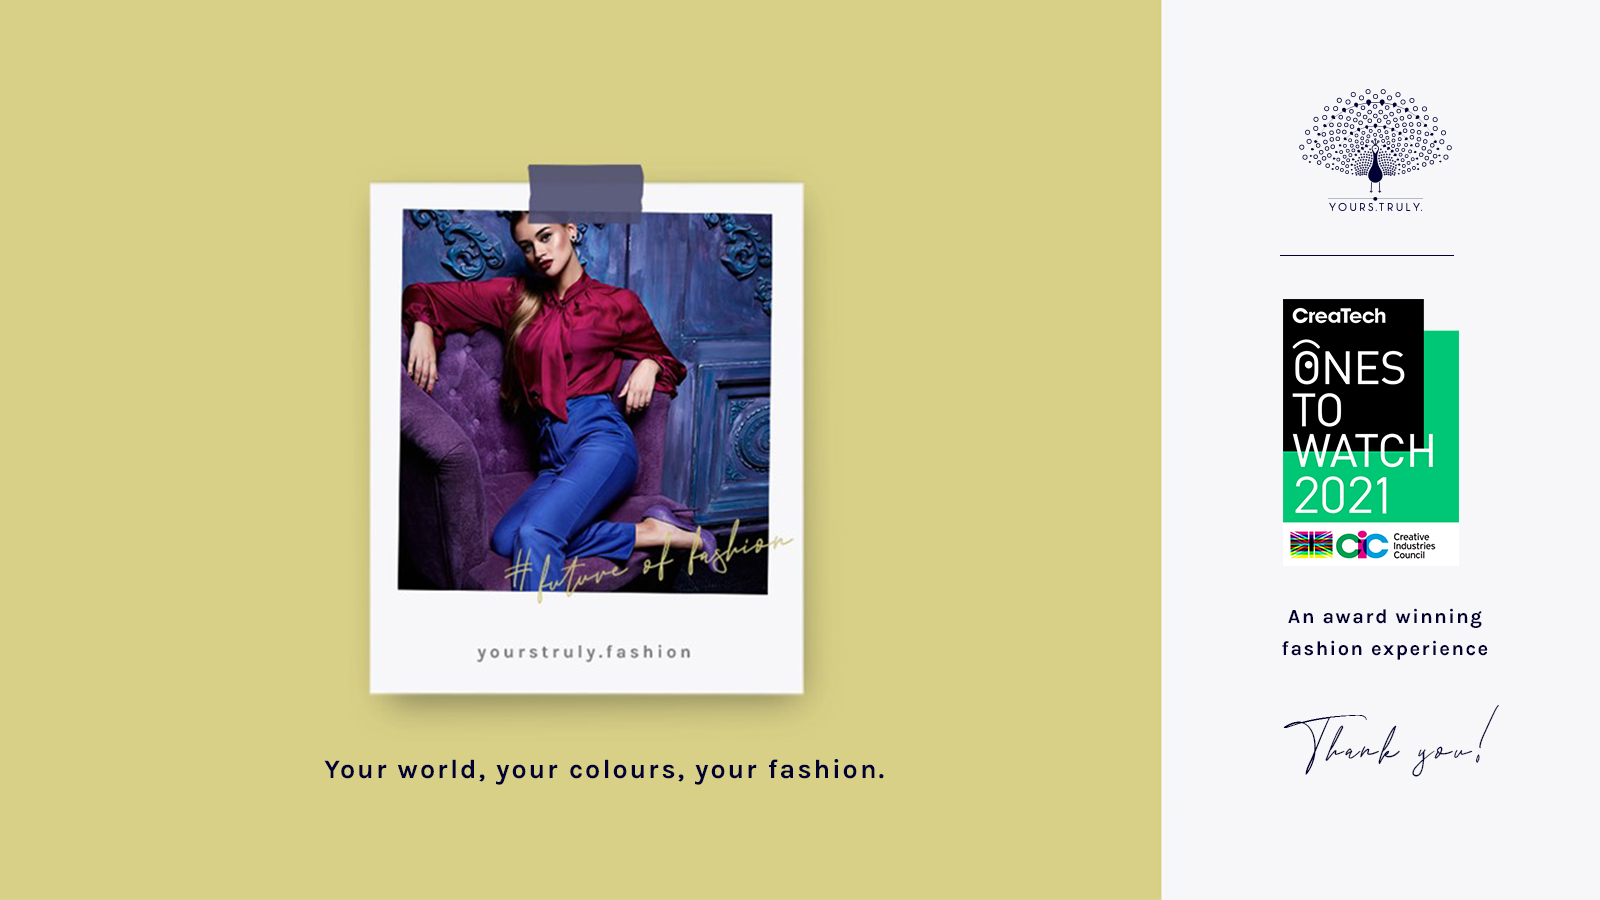 Yours.Truly., a fashion personalisation platform promoting slow and ethical fashion, by InFashion Technologies, has been named as one of the Creative Industries Council's Ones To Watch 2021